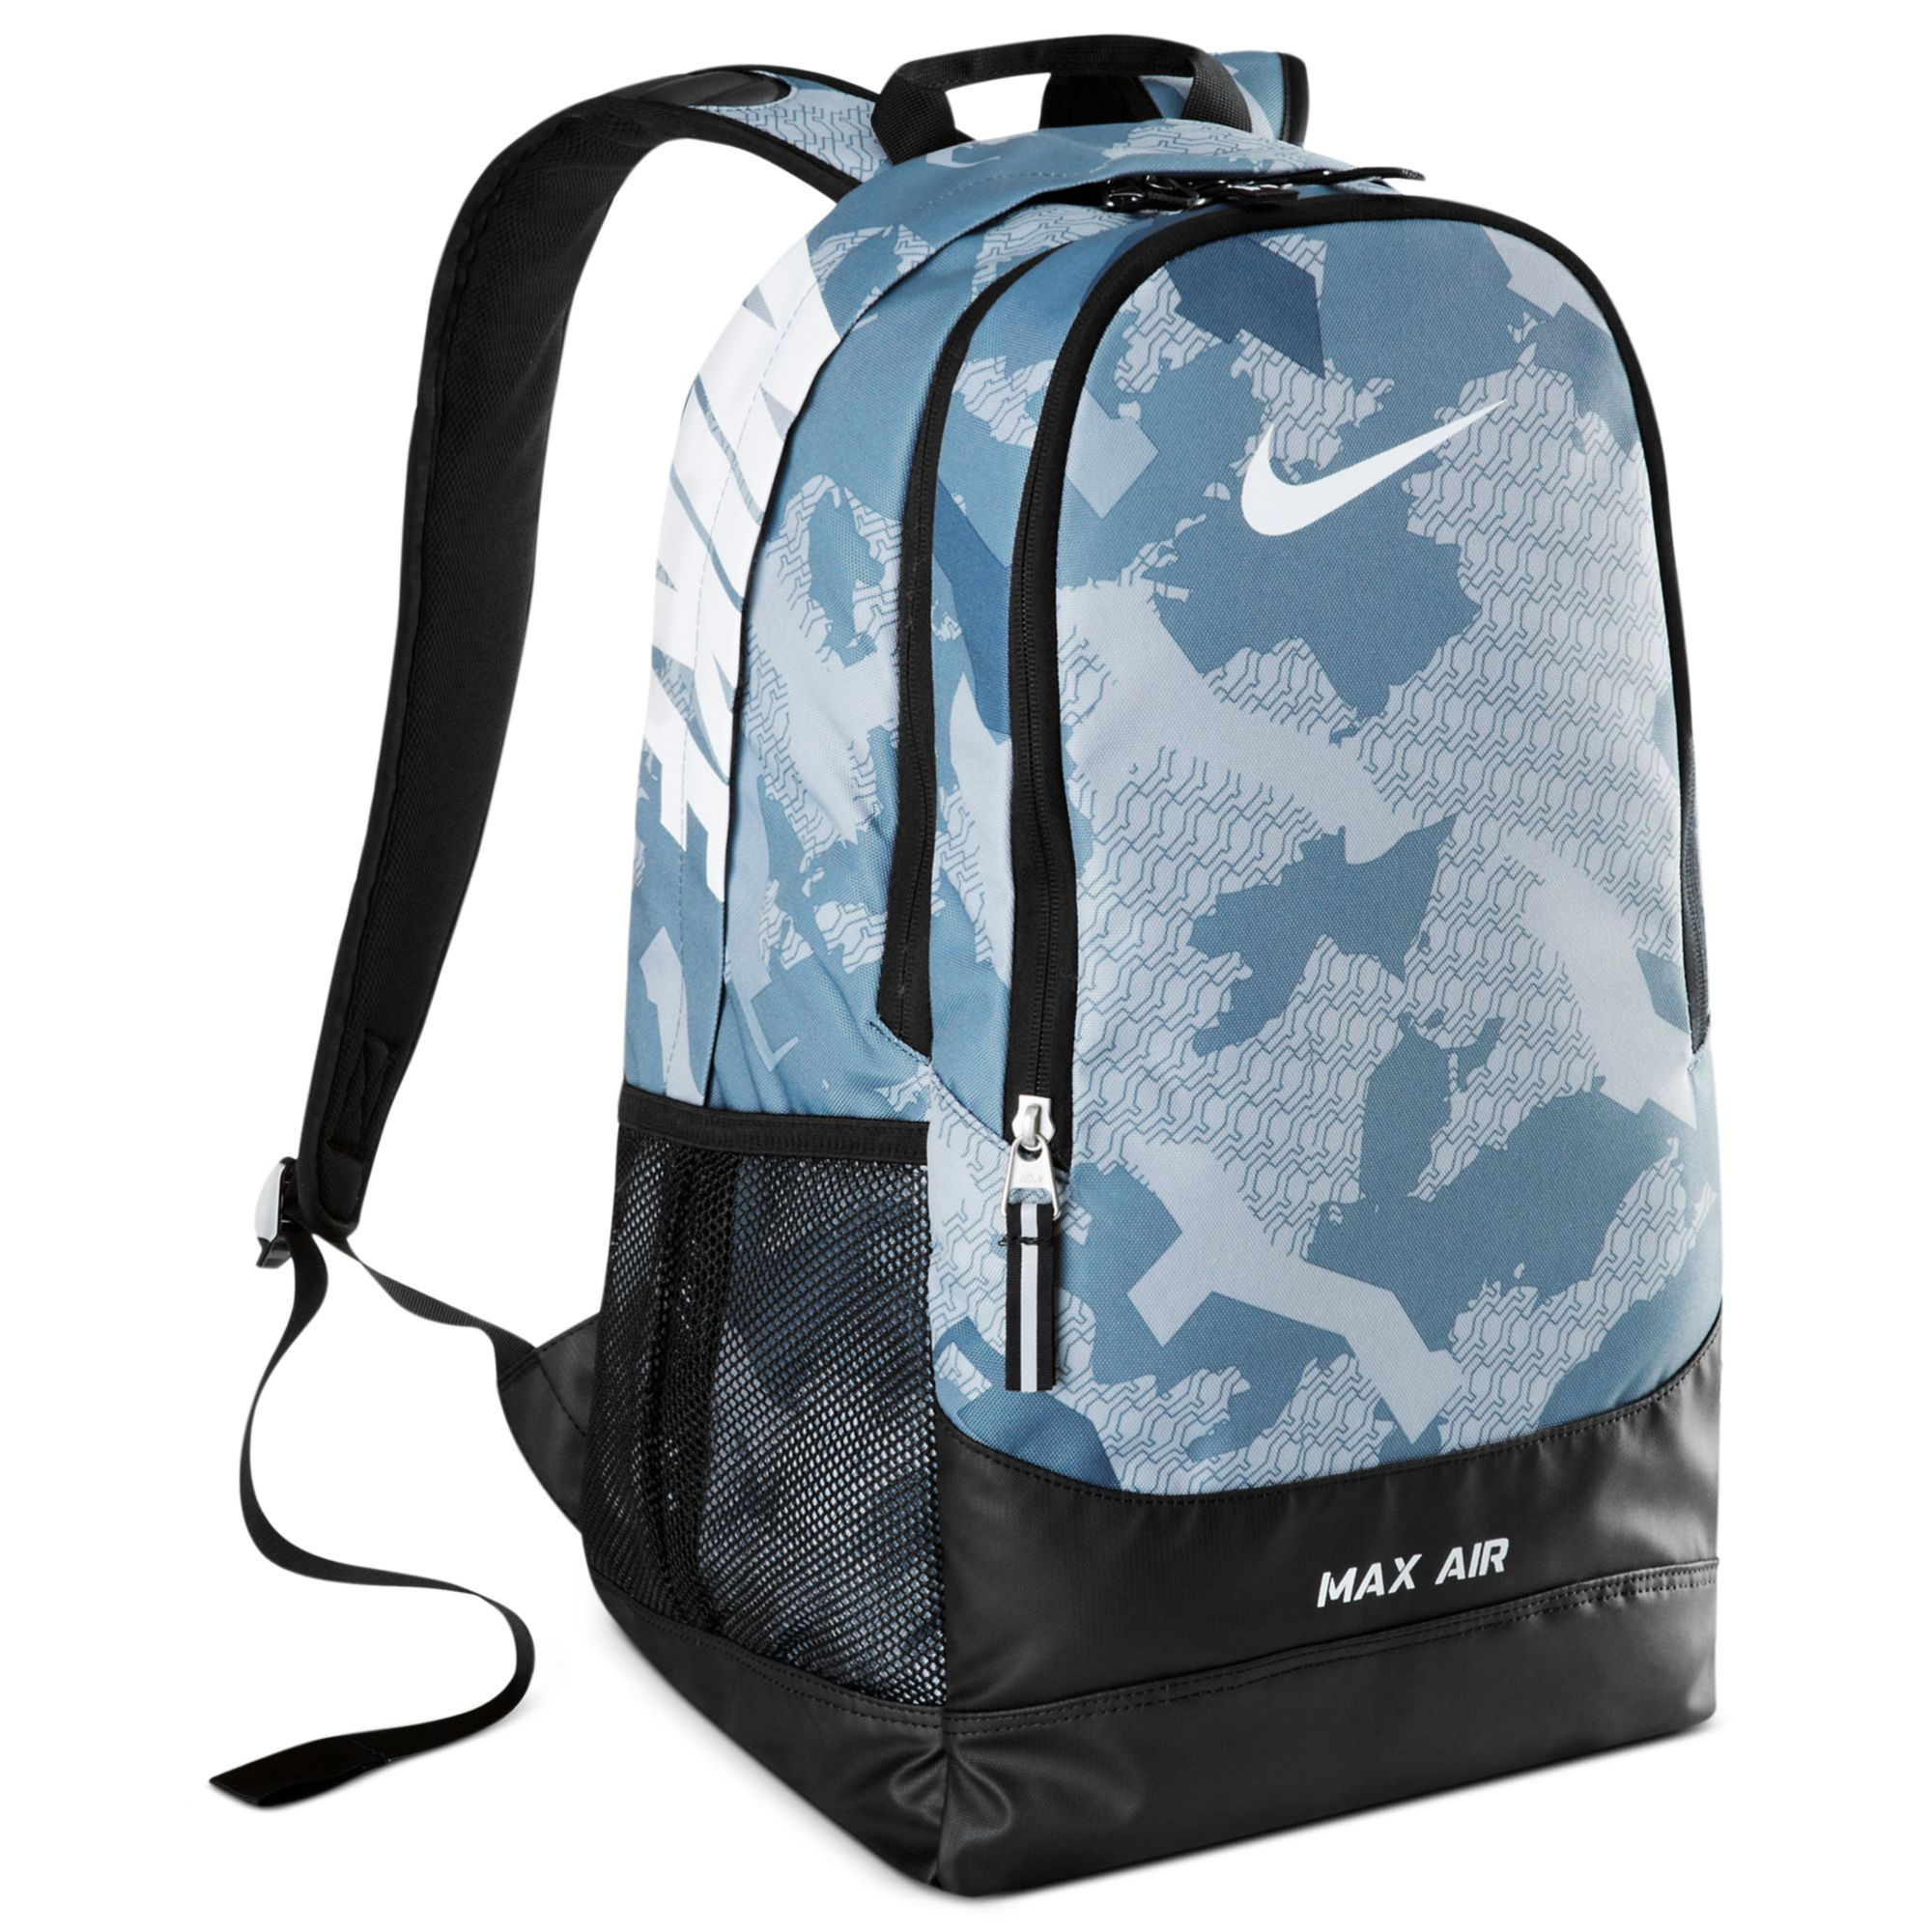 9b41469ae6b6 Lyst - Nike Team Training Max Air Large Graphic Backpack in Blue for Men